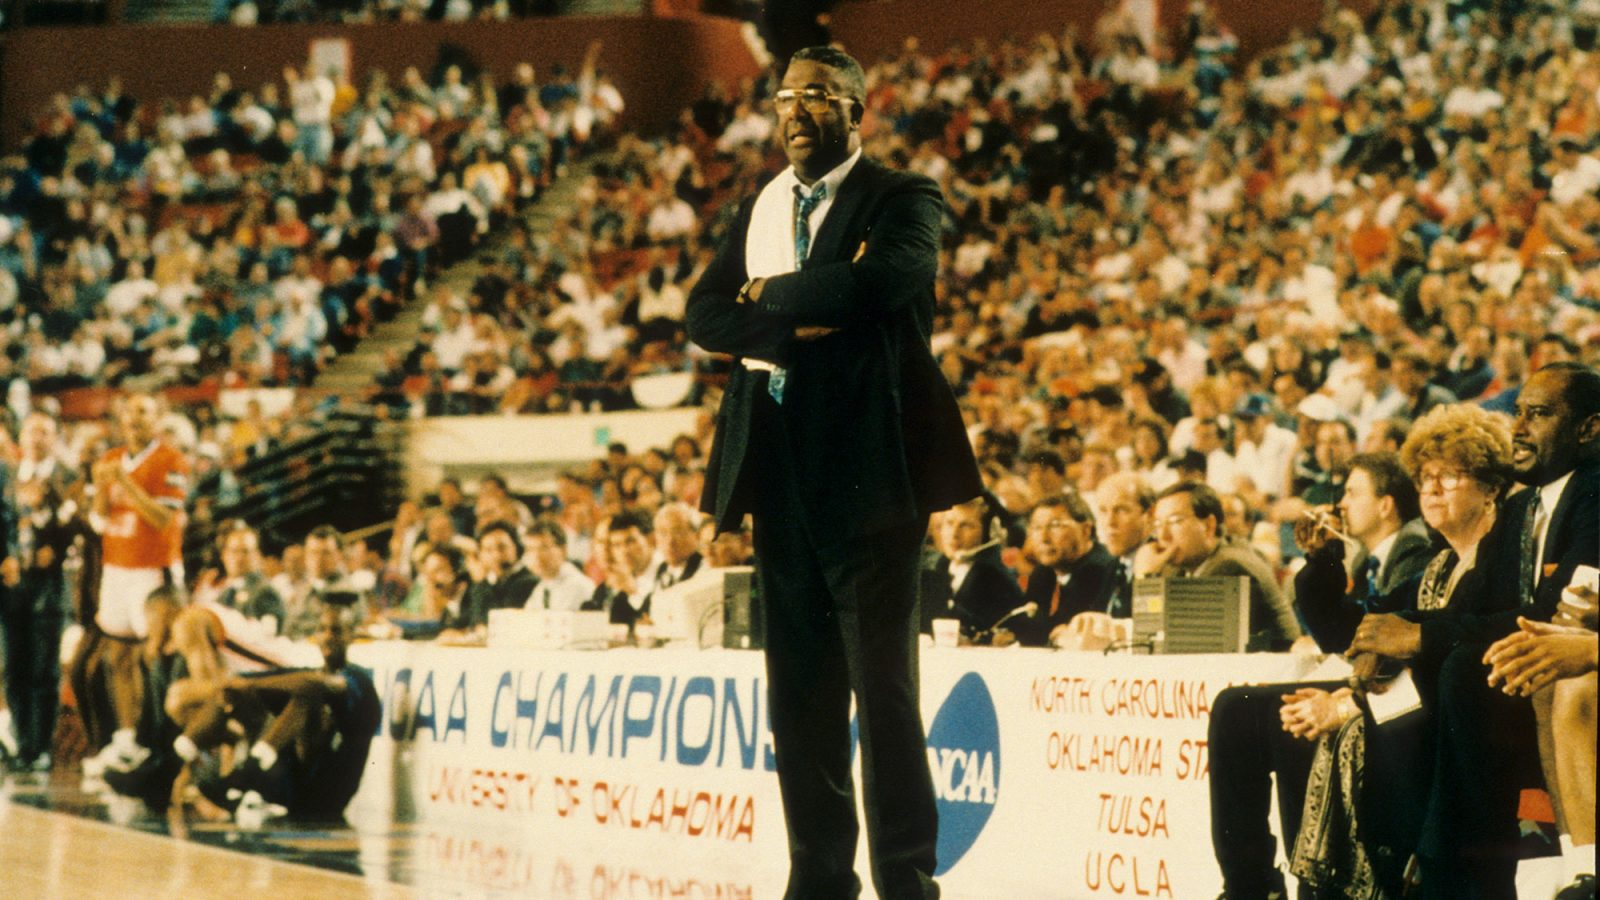 John Thompson Jr. stands courtside with his arms folded and a towel hanging from his shoulder.